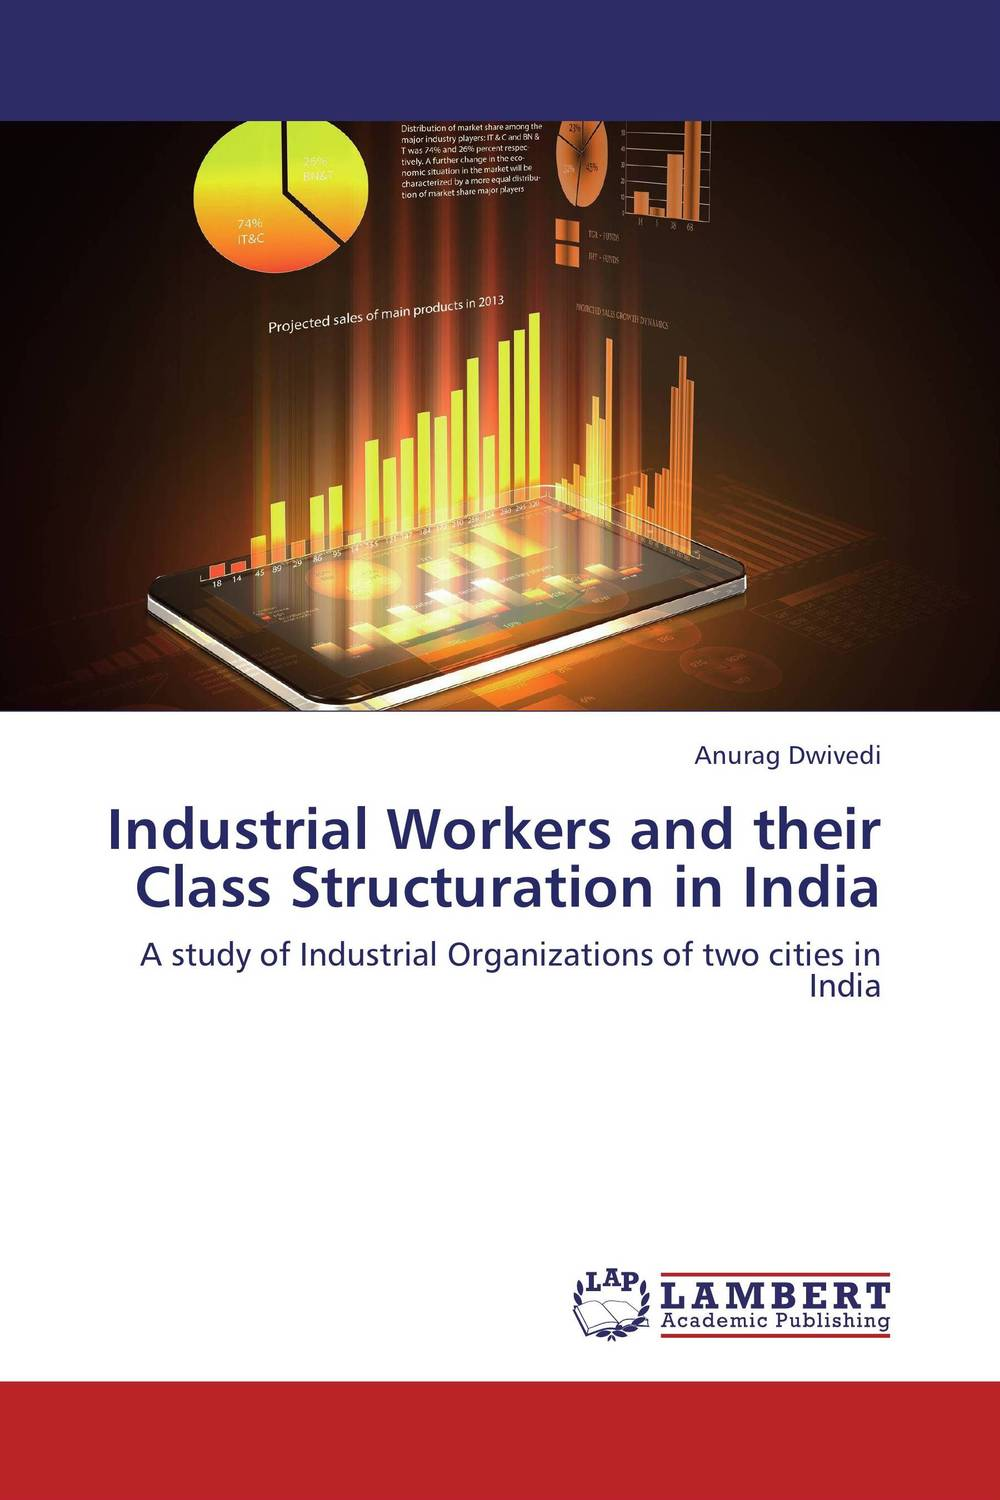 все цены на Industrial Workers and their Class Structuration in India